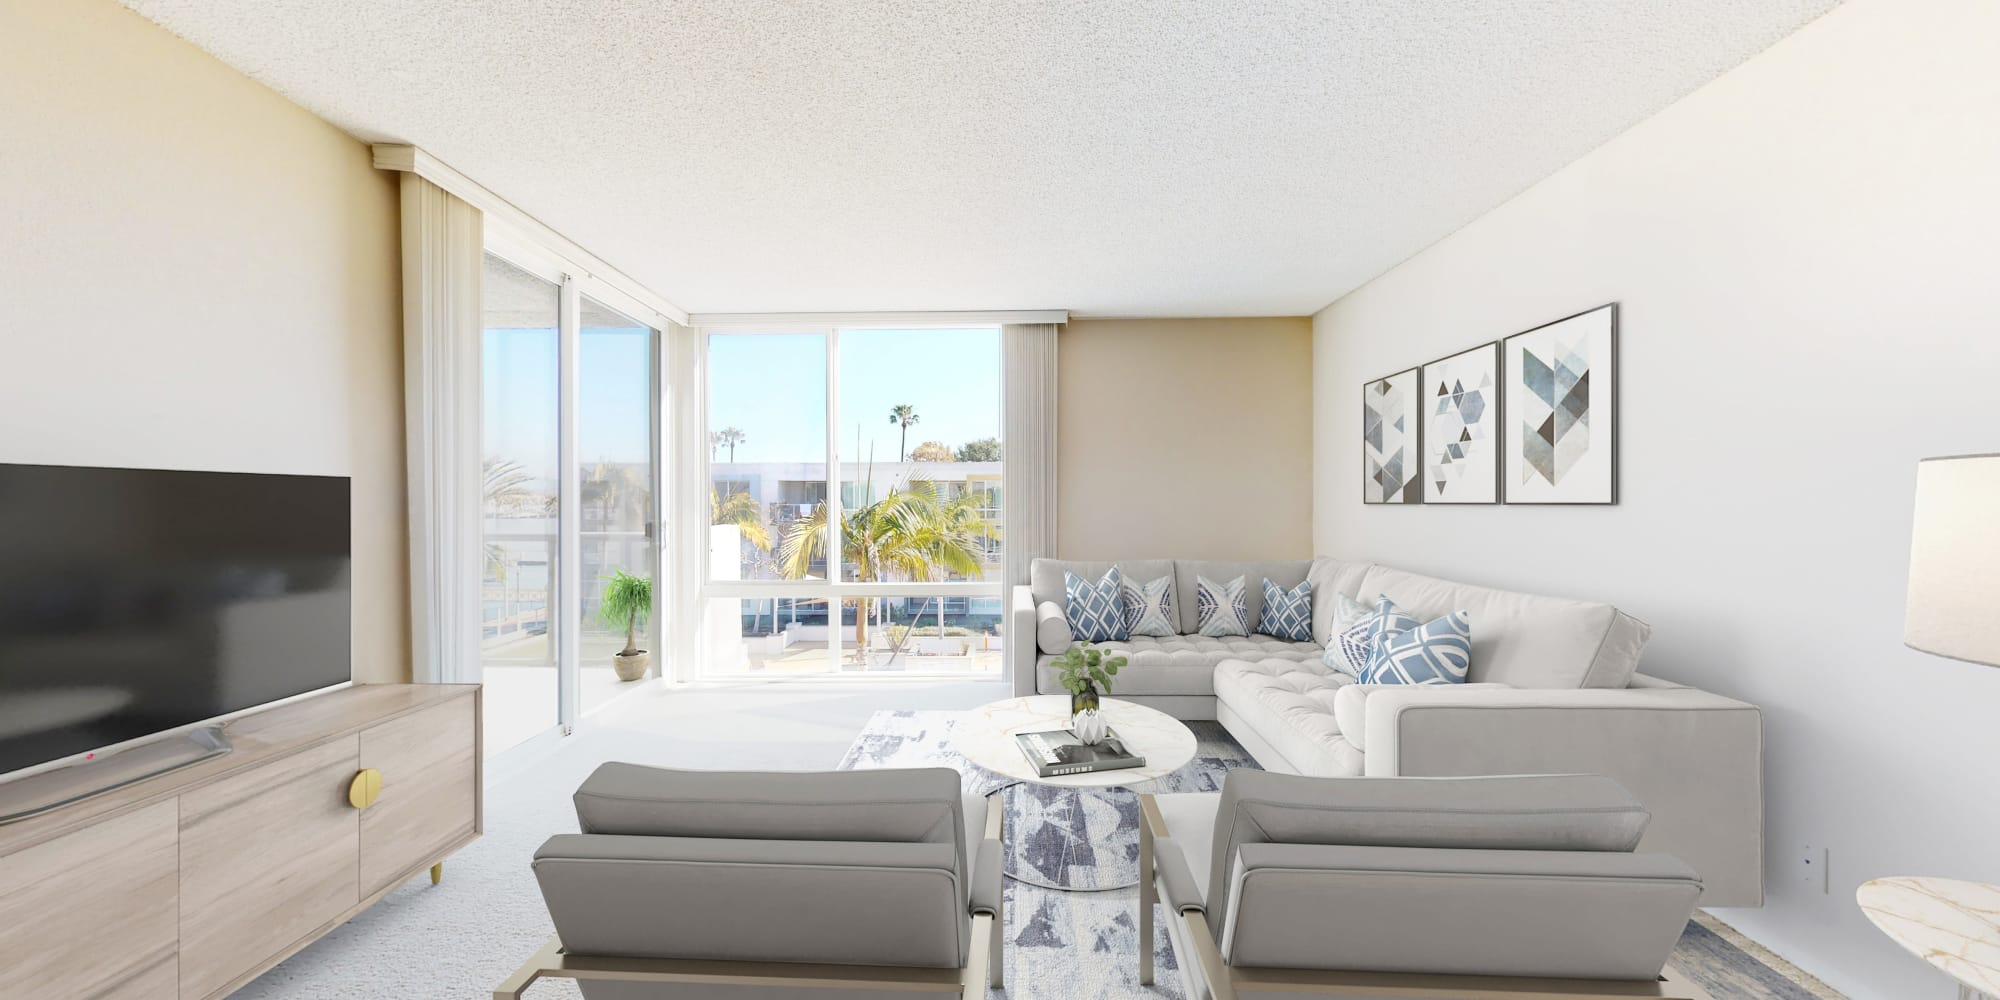 Living room with floor-to-ceiling windows and balcony with views of the marina at Waters Edge at Marina Harbor in Marina del Rey, California